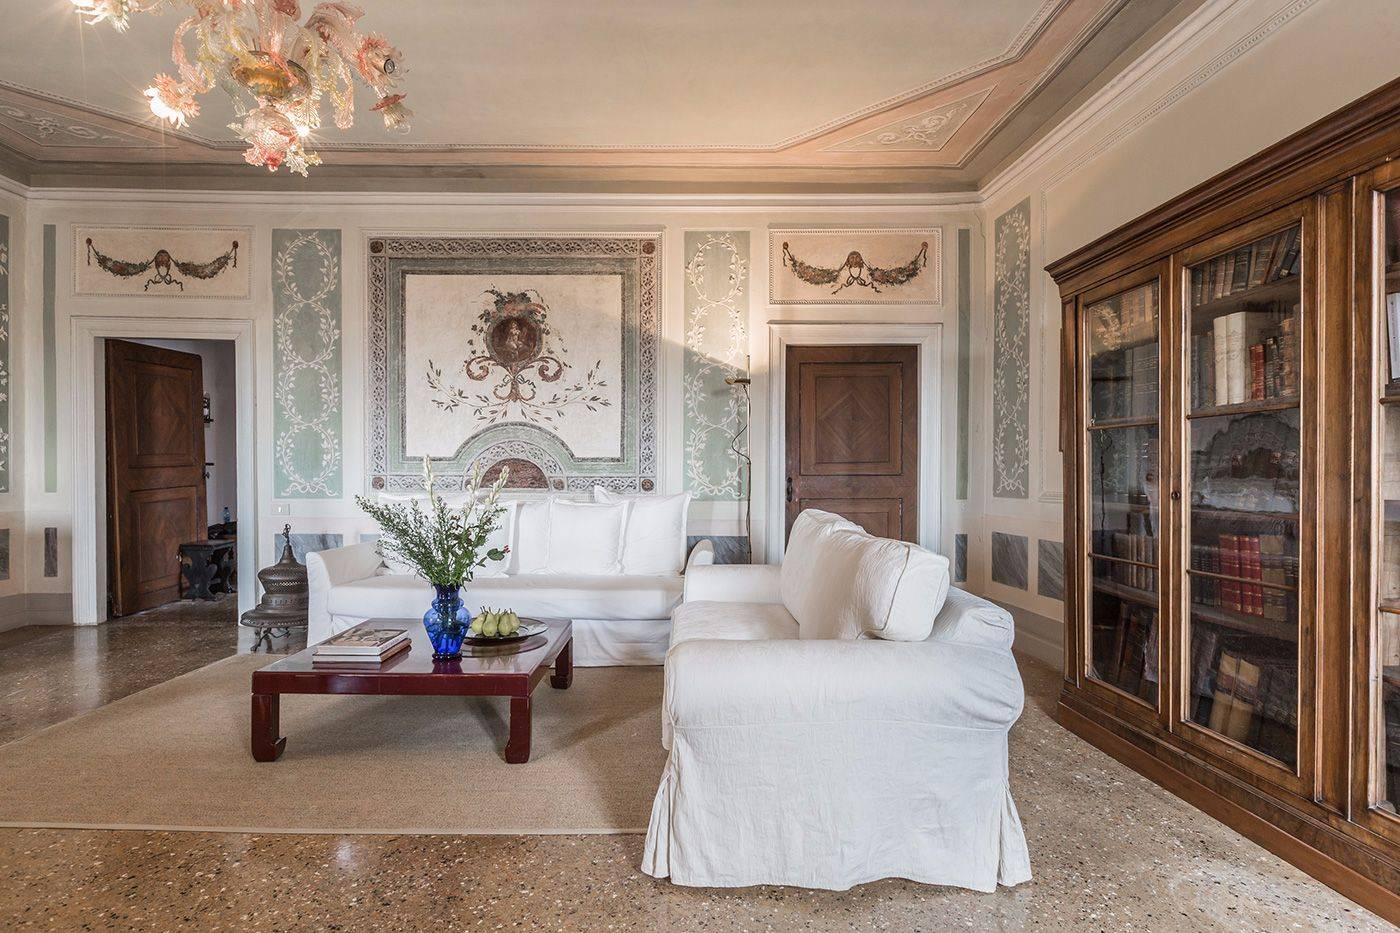 luxury furnishings and bright ambience